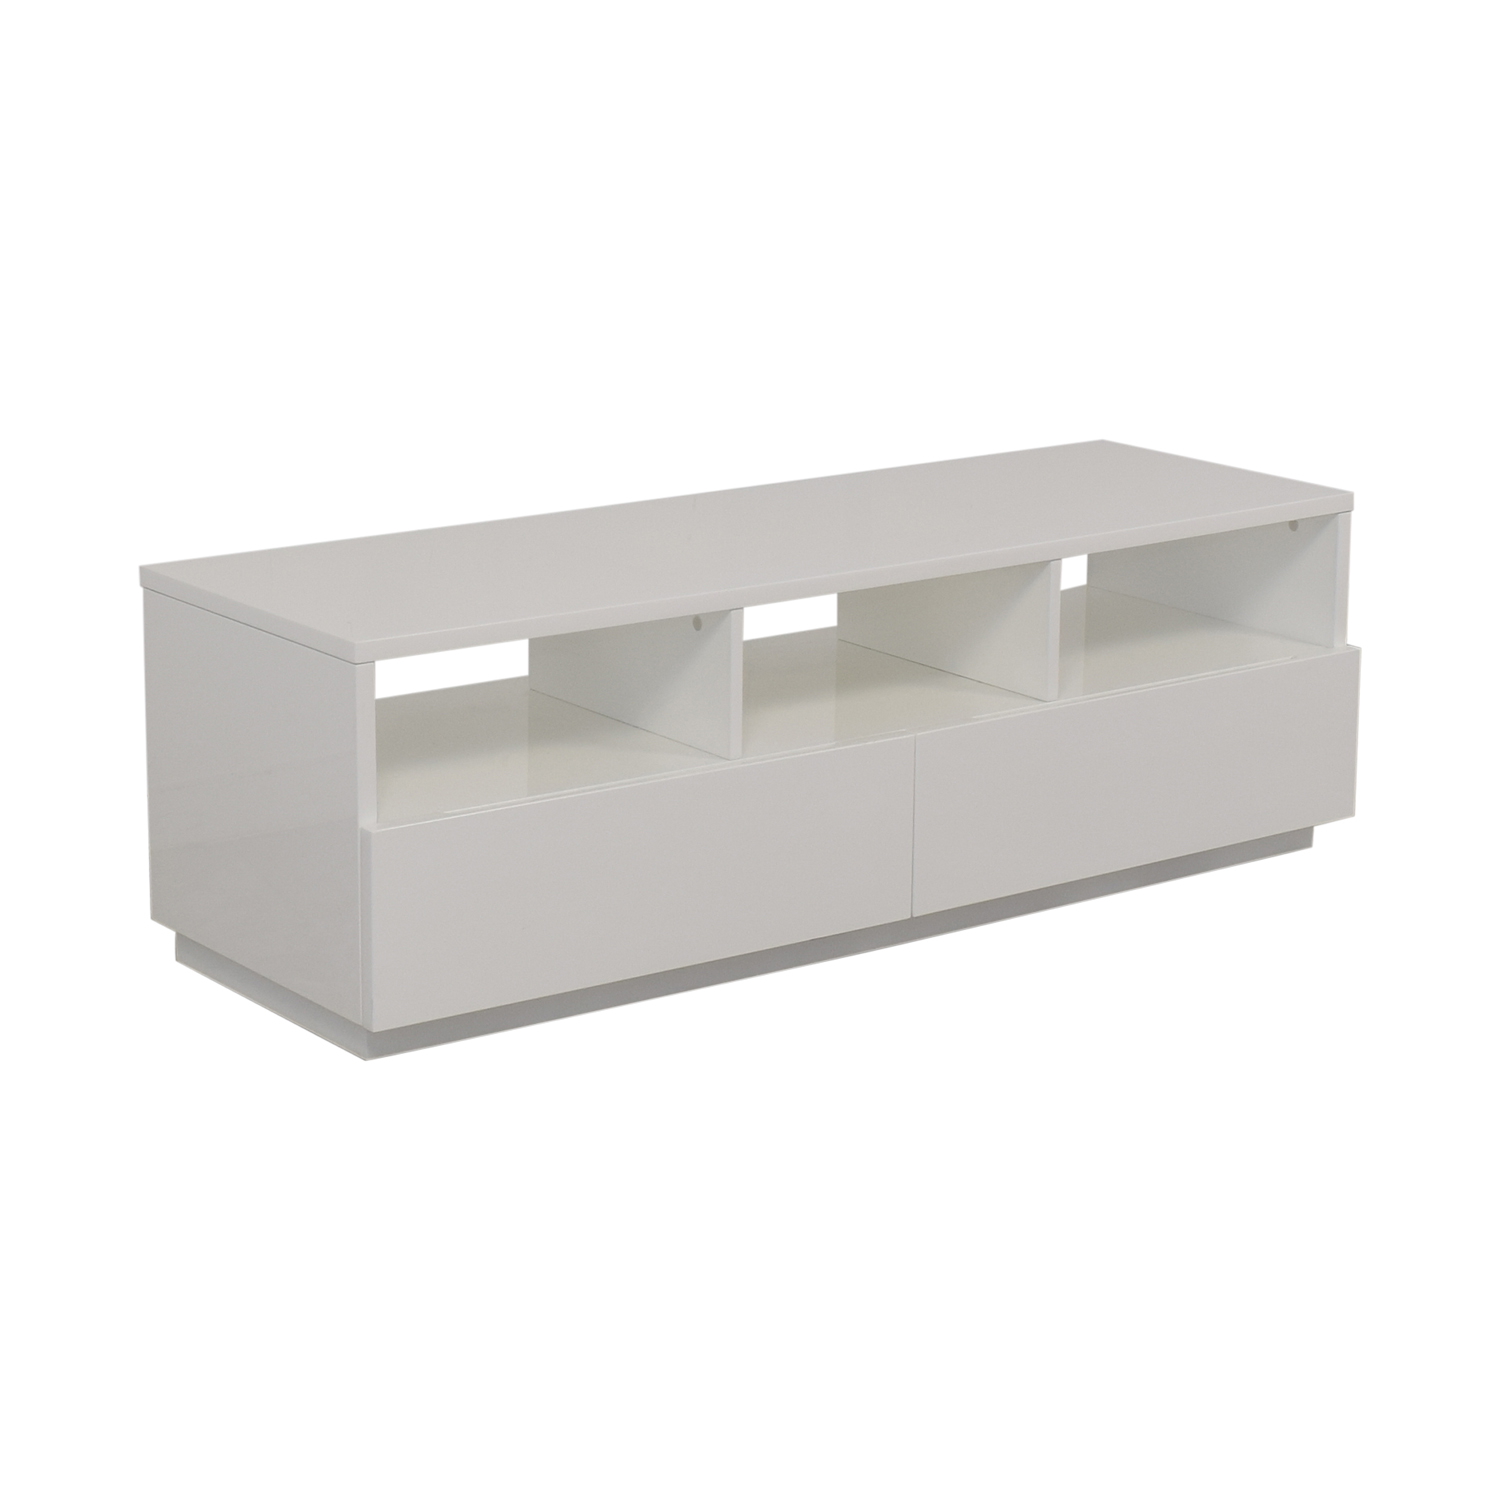 CB2 CB2 Chill White Media Console